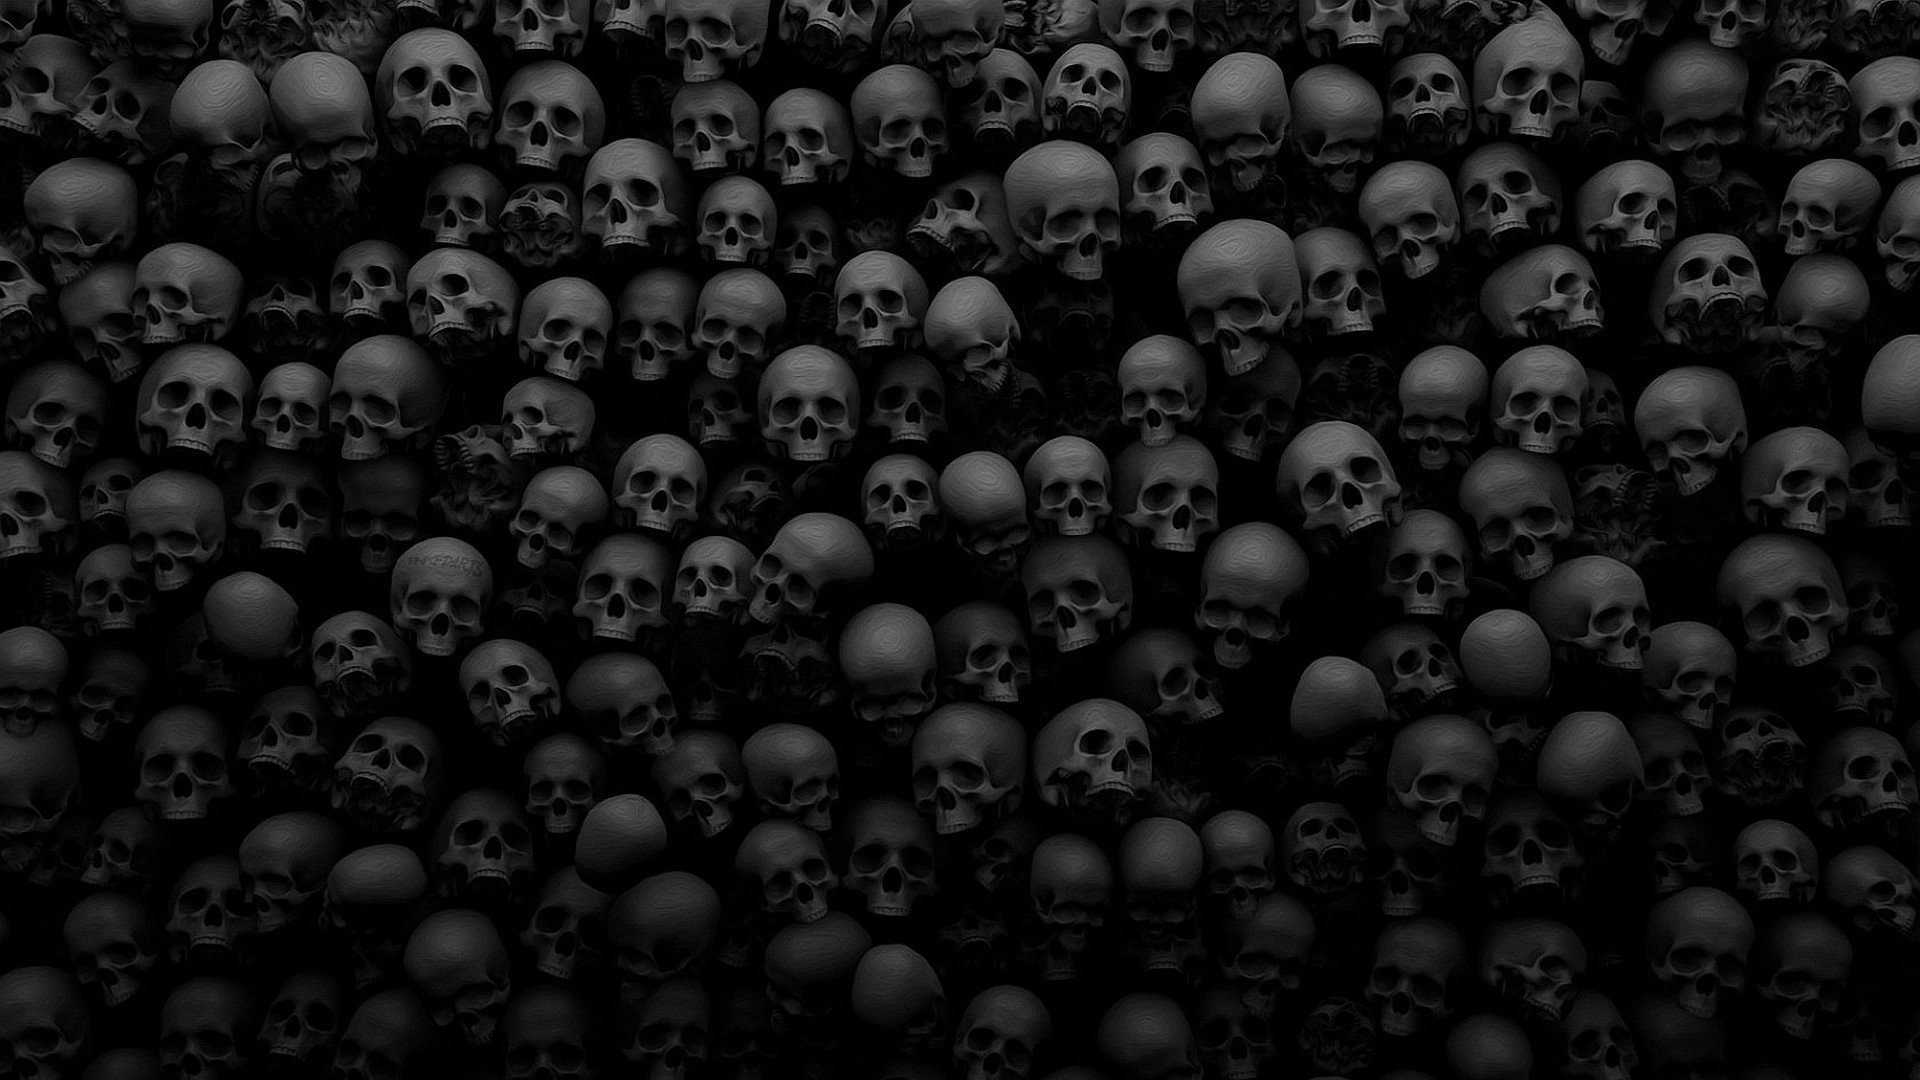 Skull background download free awesome high resolution - Hd pattern wallpapers 1080p ...